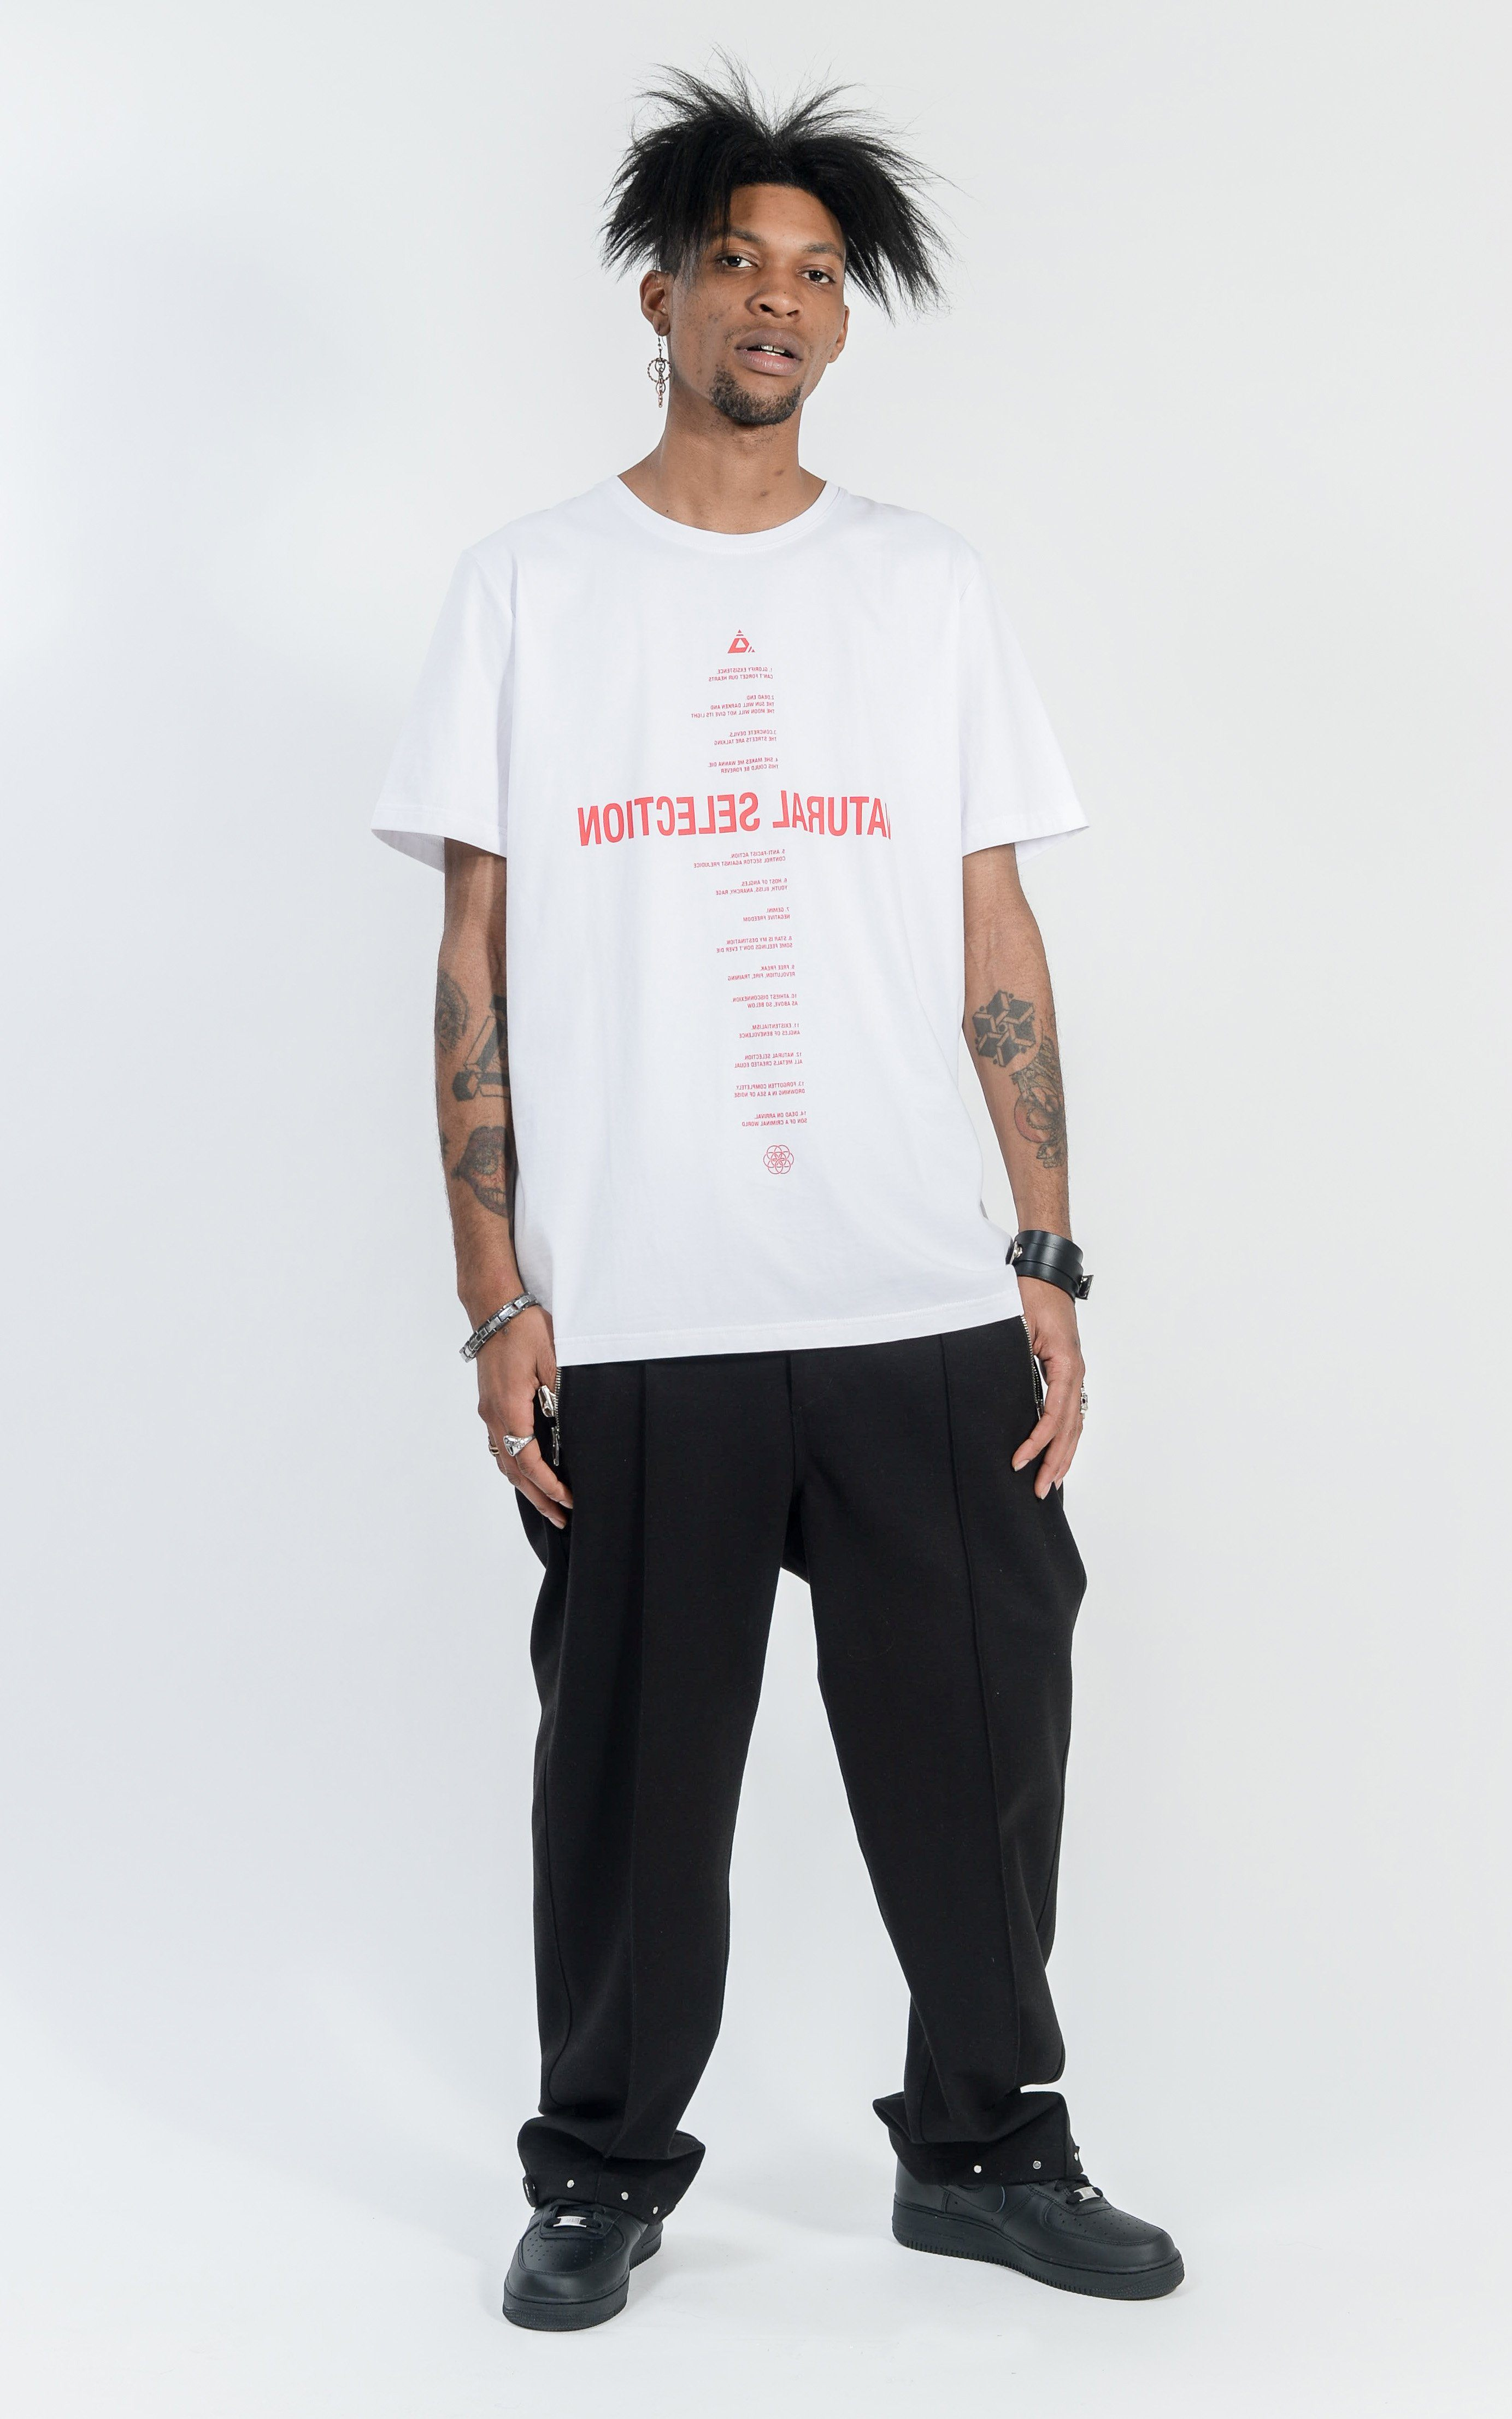 CON1710-01 NATURAL SELECTION TEE - WHITE/RED PRINT